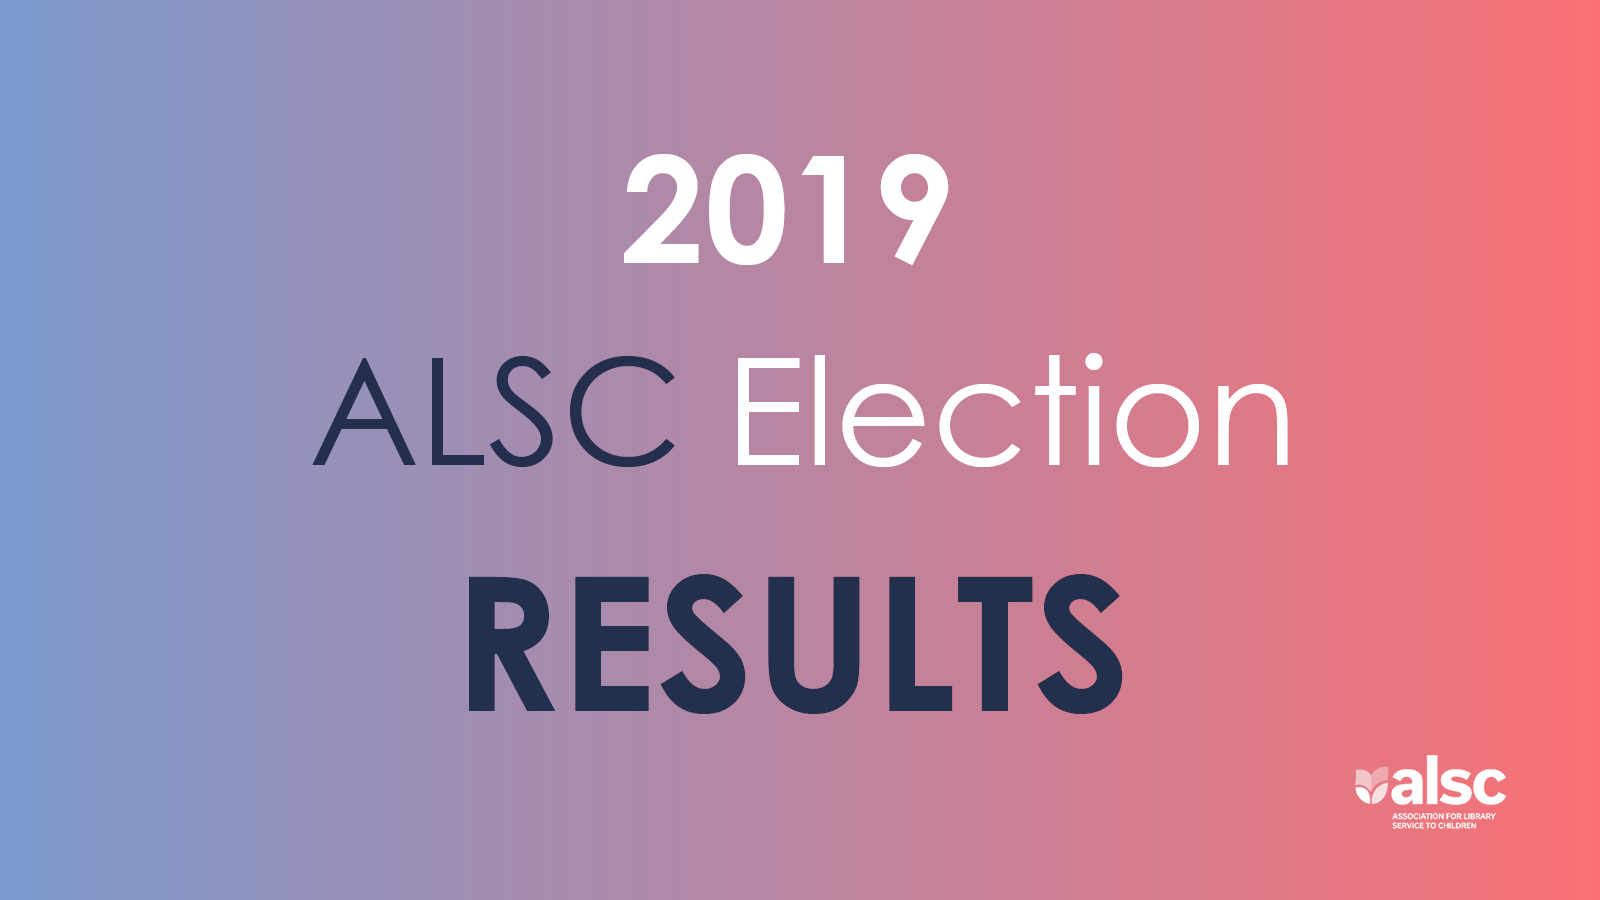 2019 results graphic